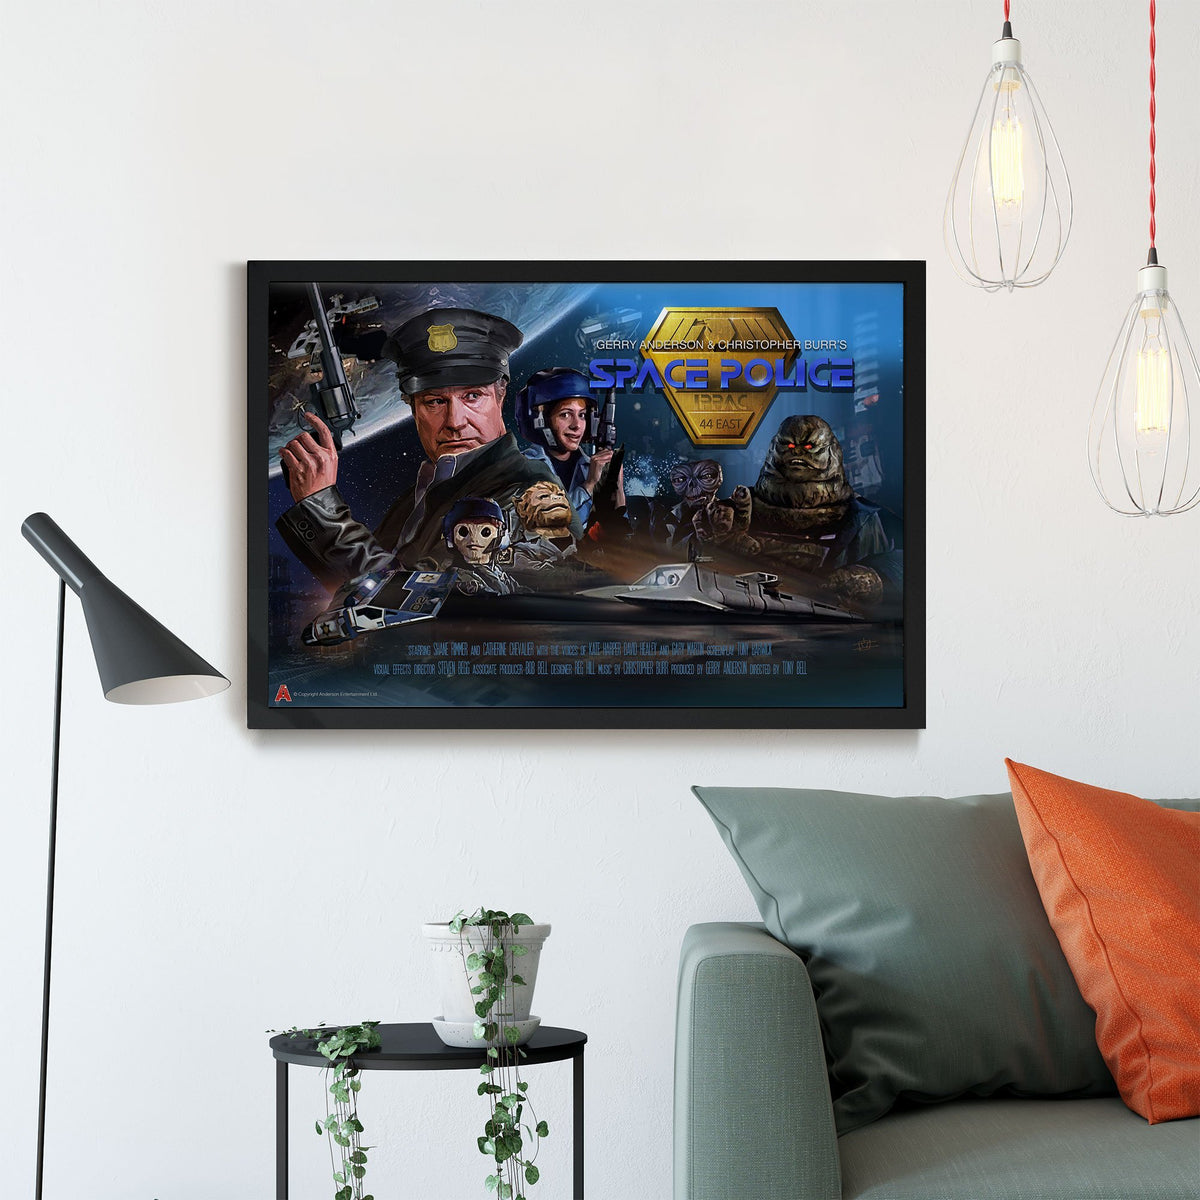 Space Police Framed Print [Official and Exclusive] - The Gerry Anderson Store